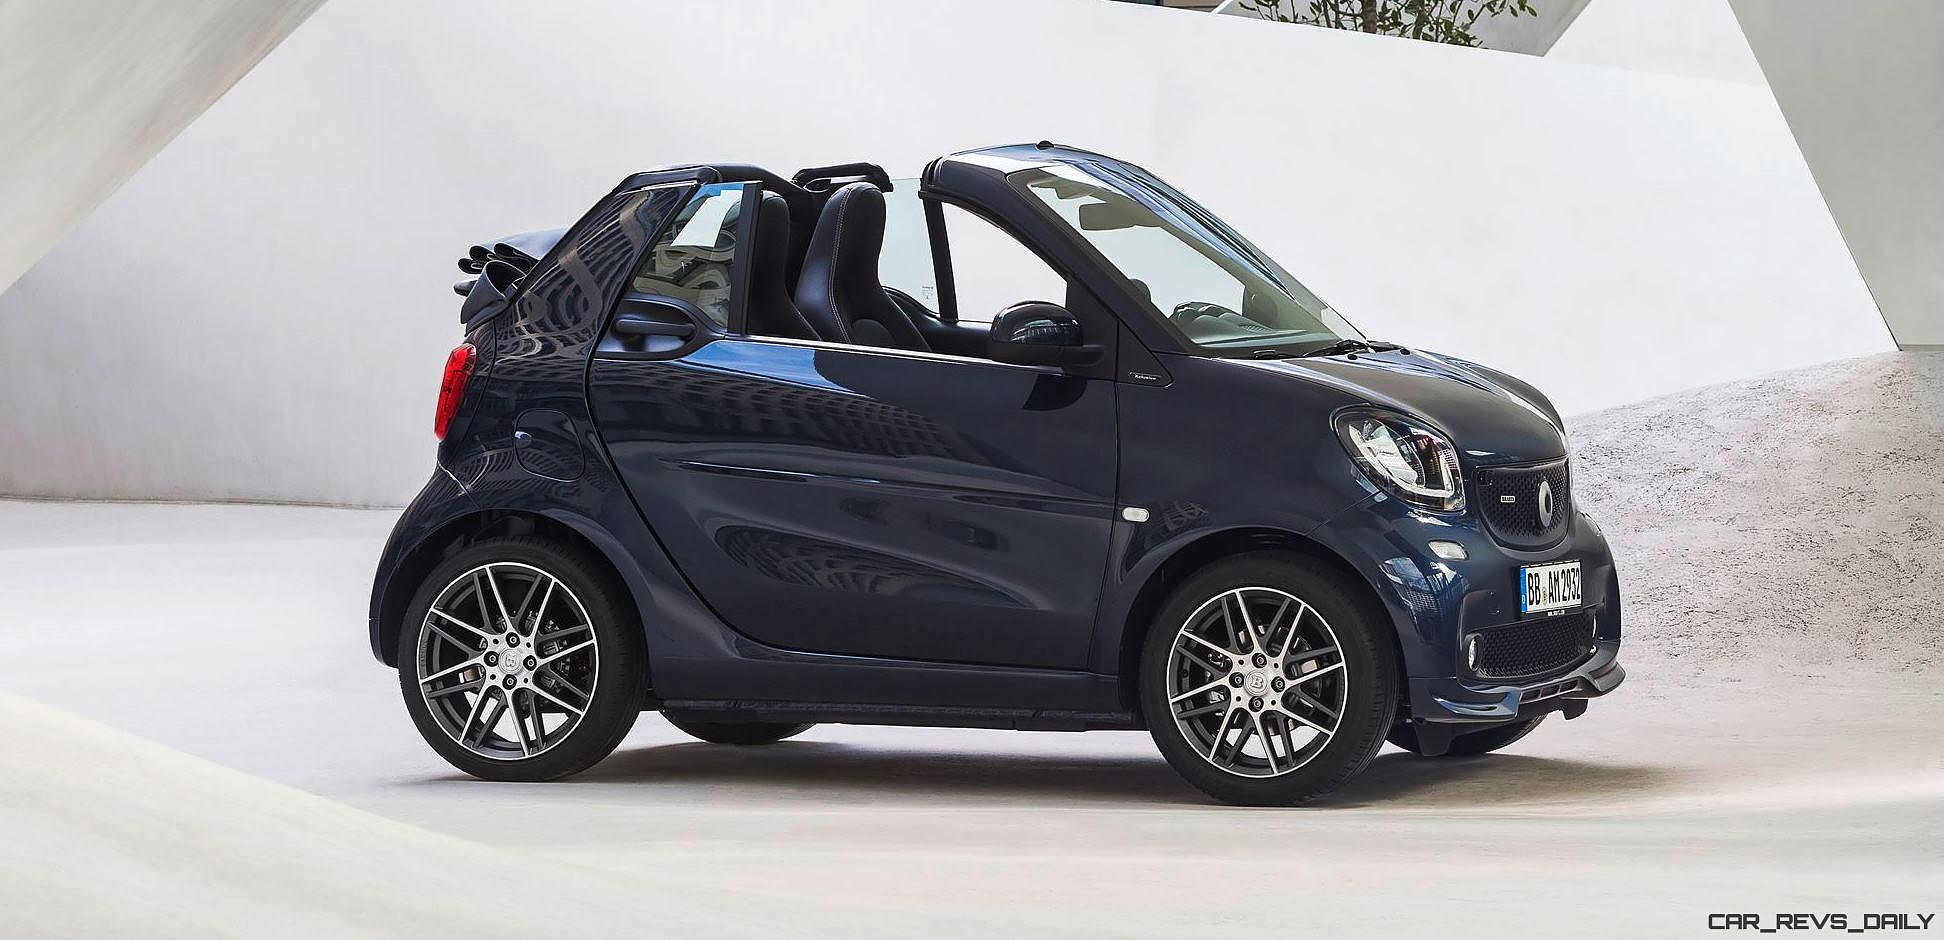 2017 smart brabus twins revealed 20 power bump quicker steering and sport exhaust car revs. Black Bedroom Furniture Sets. Home Design Ideas